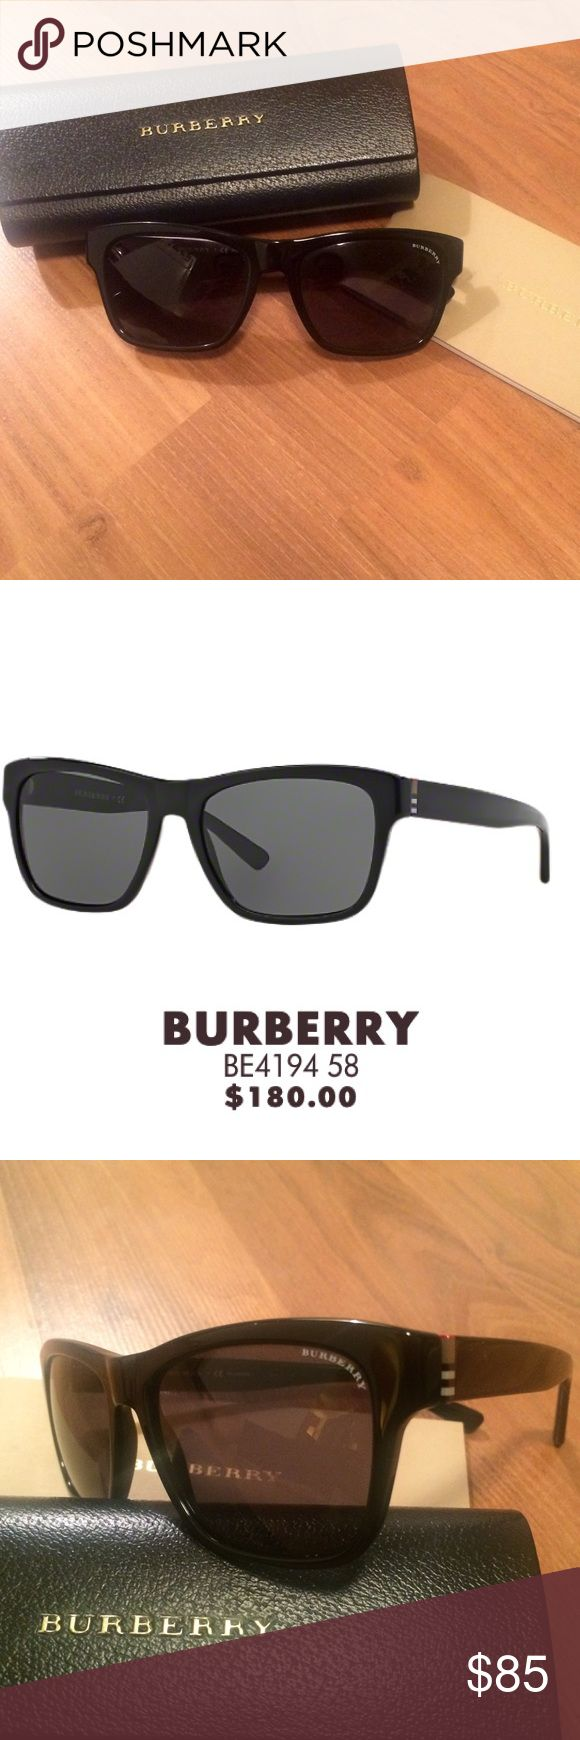 are burberry sunglasses polarized